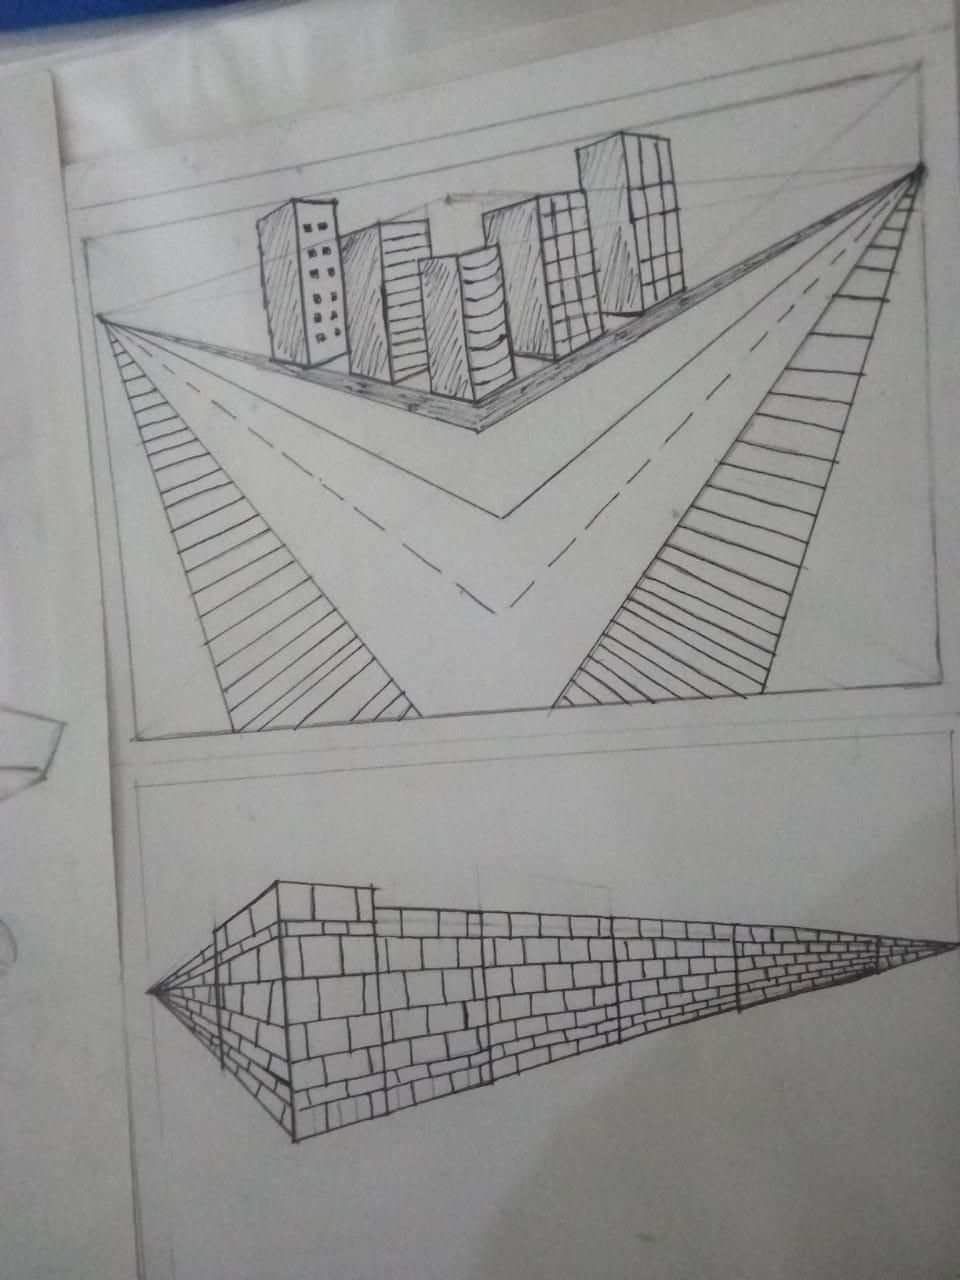 Perspective - image 1 - student project